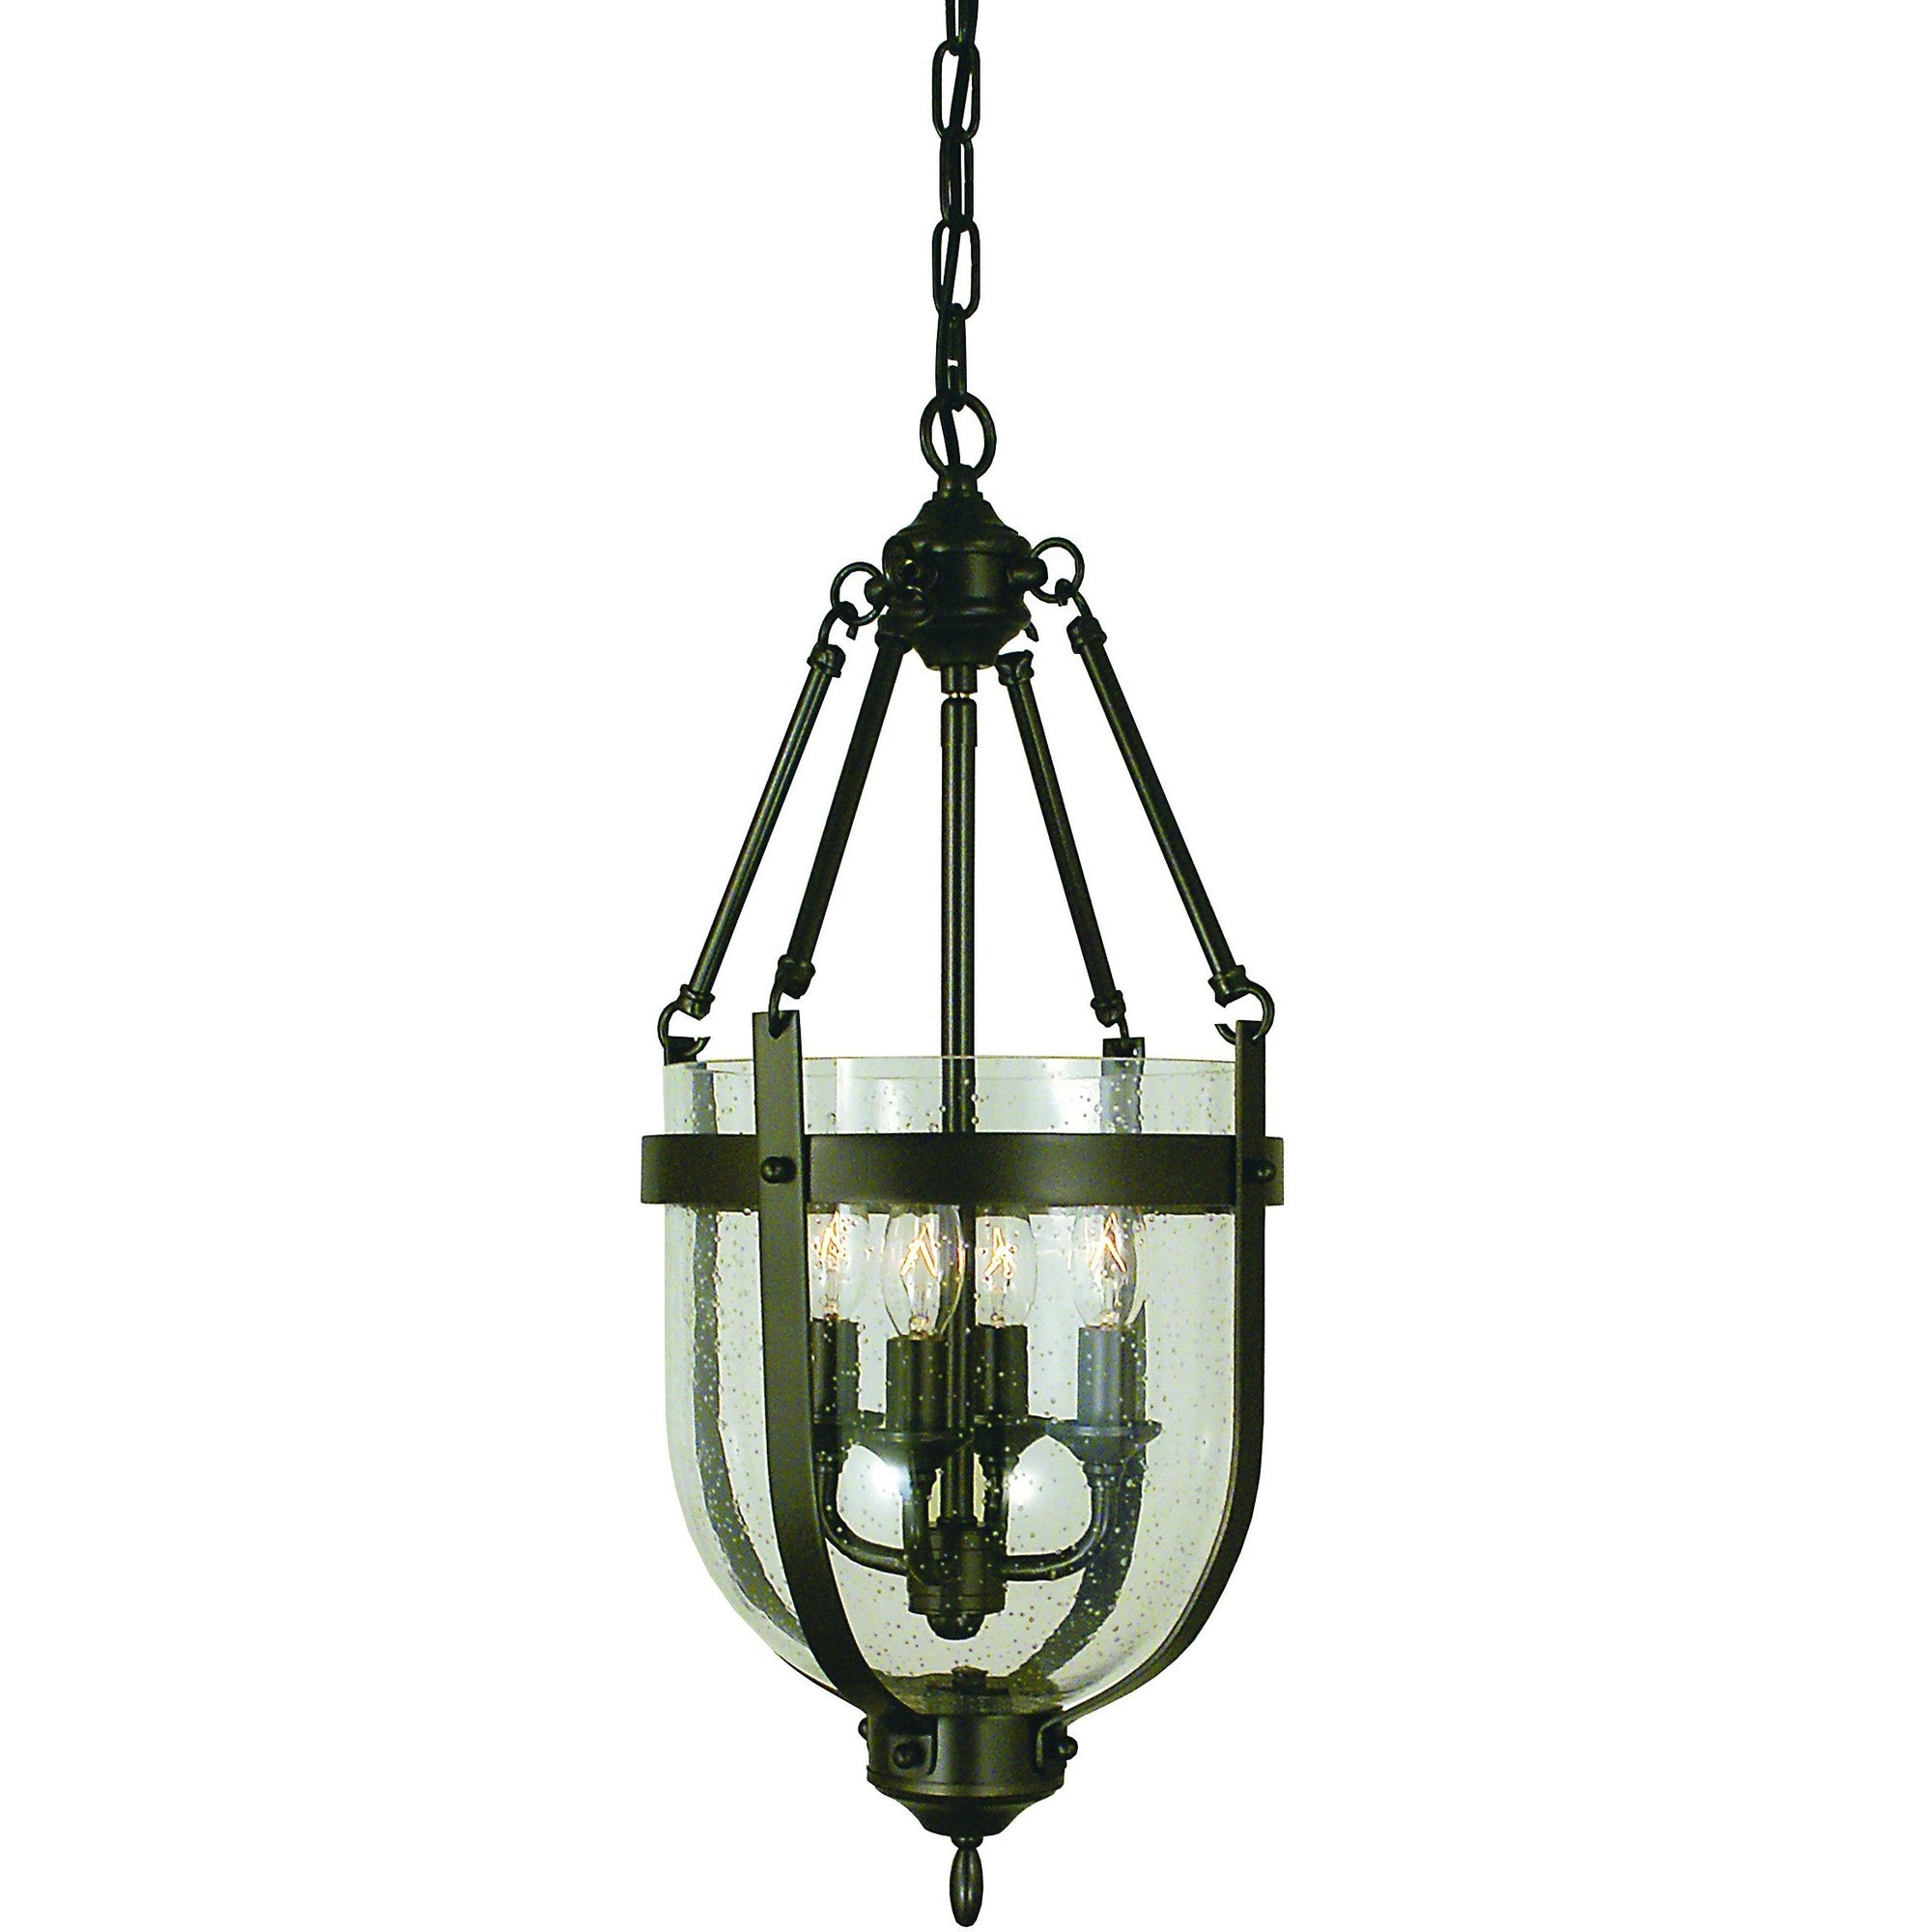 Framburg Mini Chandeliers Mahogany Bronze 4-Light Mahogany Bronze Hannover Mini-Chandelier by Framburg 1014